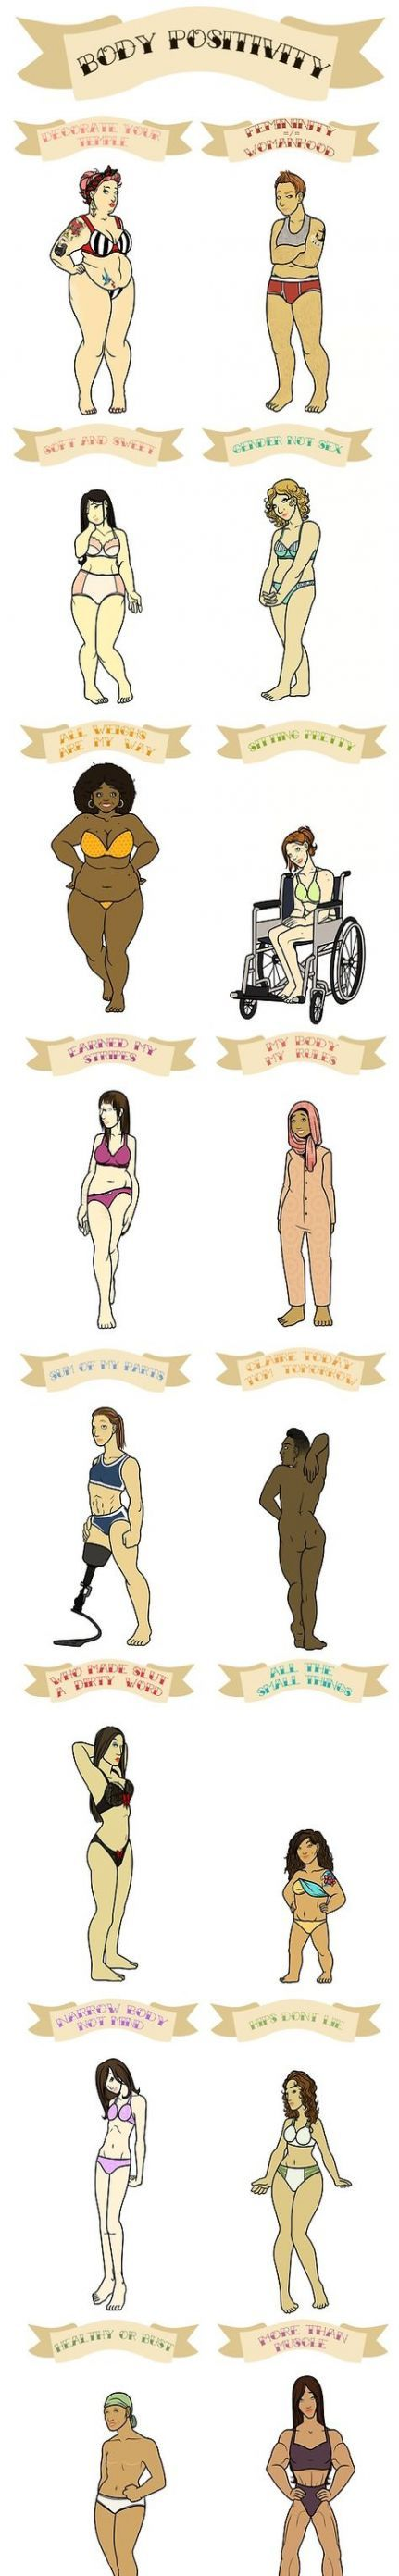 New quotes beautiful women feminism body positive 30 ideas #quotes